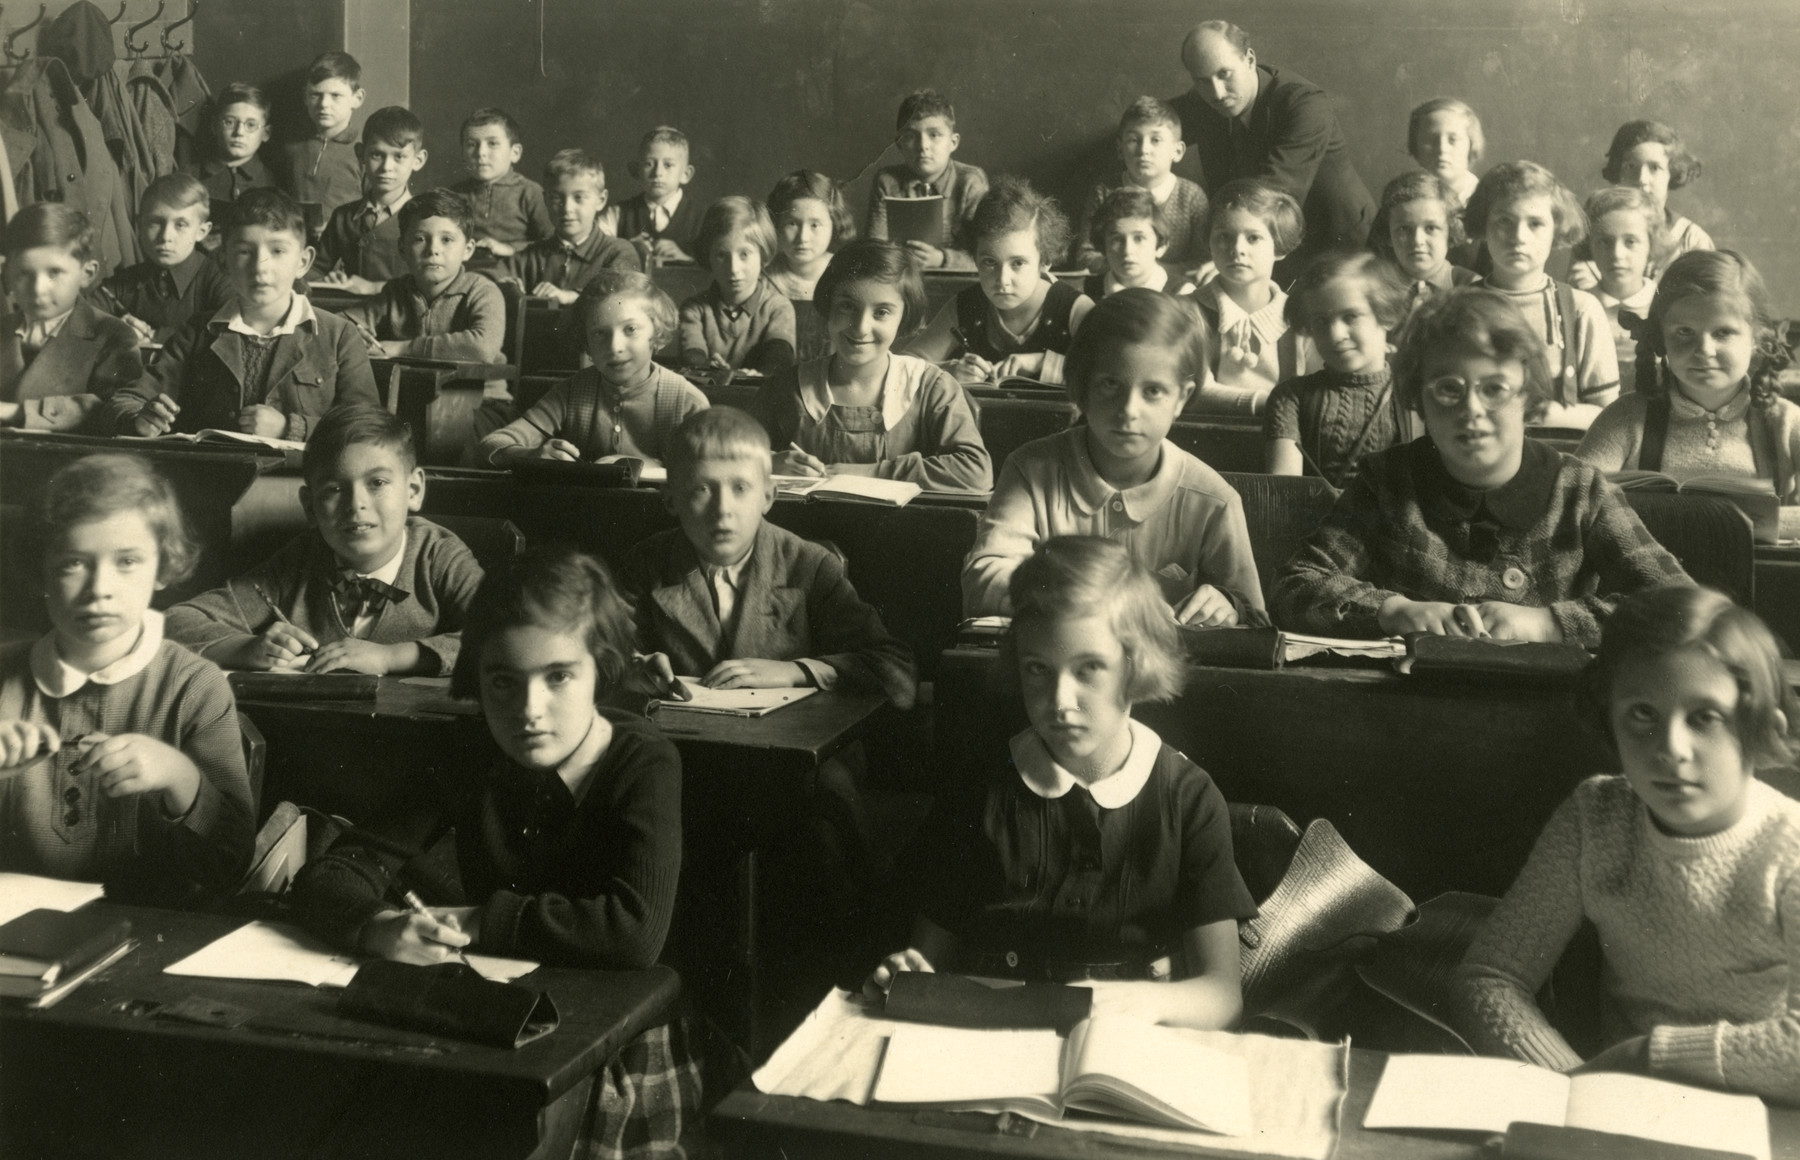 Children sit at their desks in the Carlebach School in Leipzig, Germany.  The donor, Irene Lewitt is seated in the second row, second from the right.  Pictured in the front row are Stephanie Bamberger (in the corner), Ruth Joskie (with white collar) and Miriam Hepner (to her left).  The teacher in the back is Felix Carlebach.